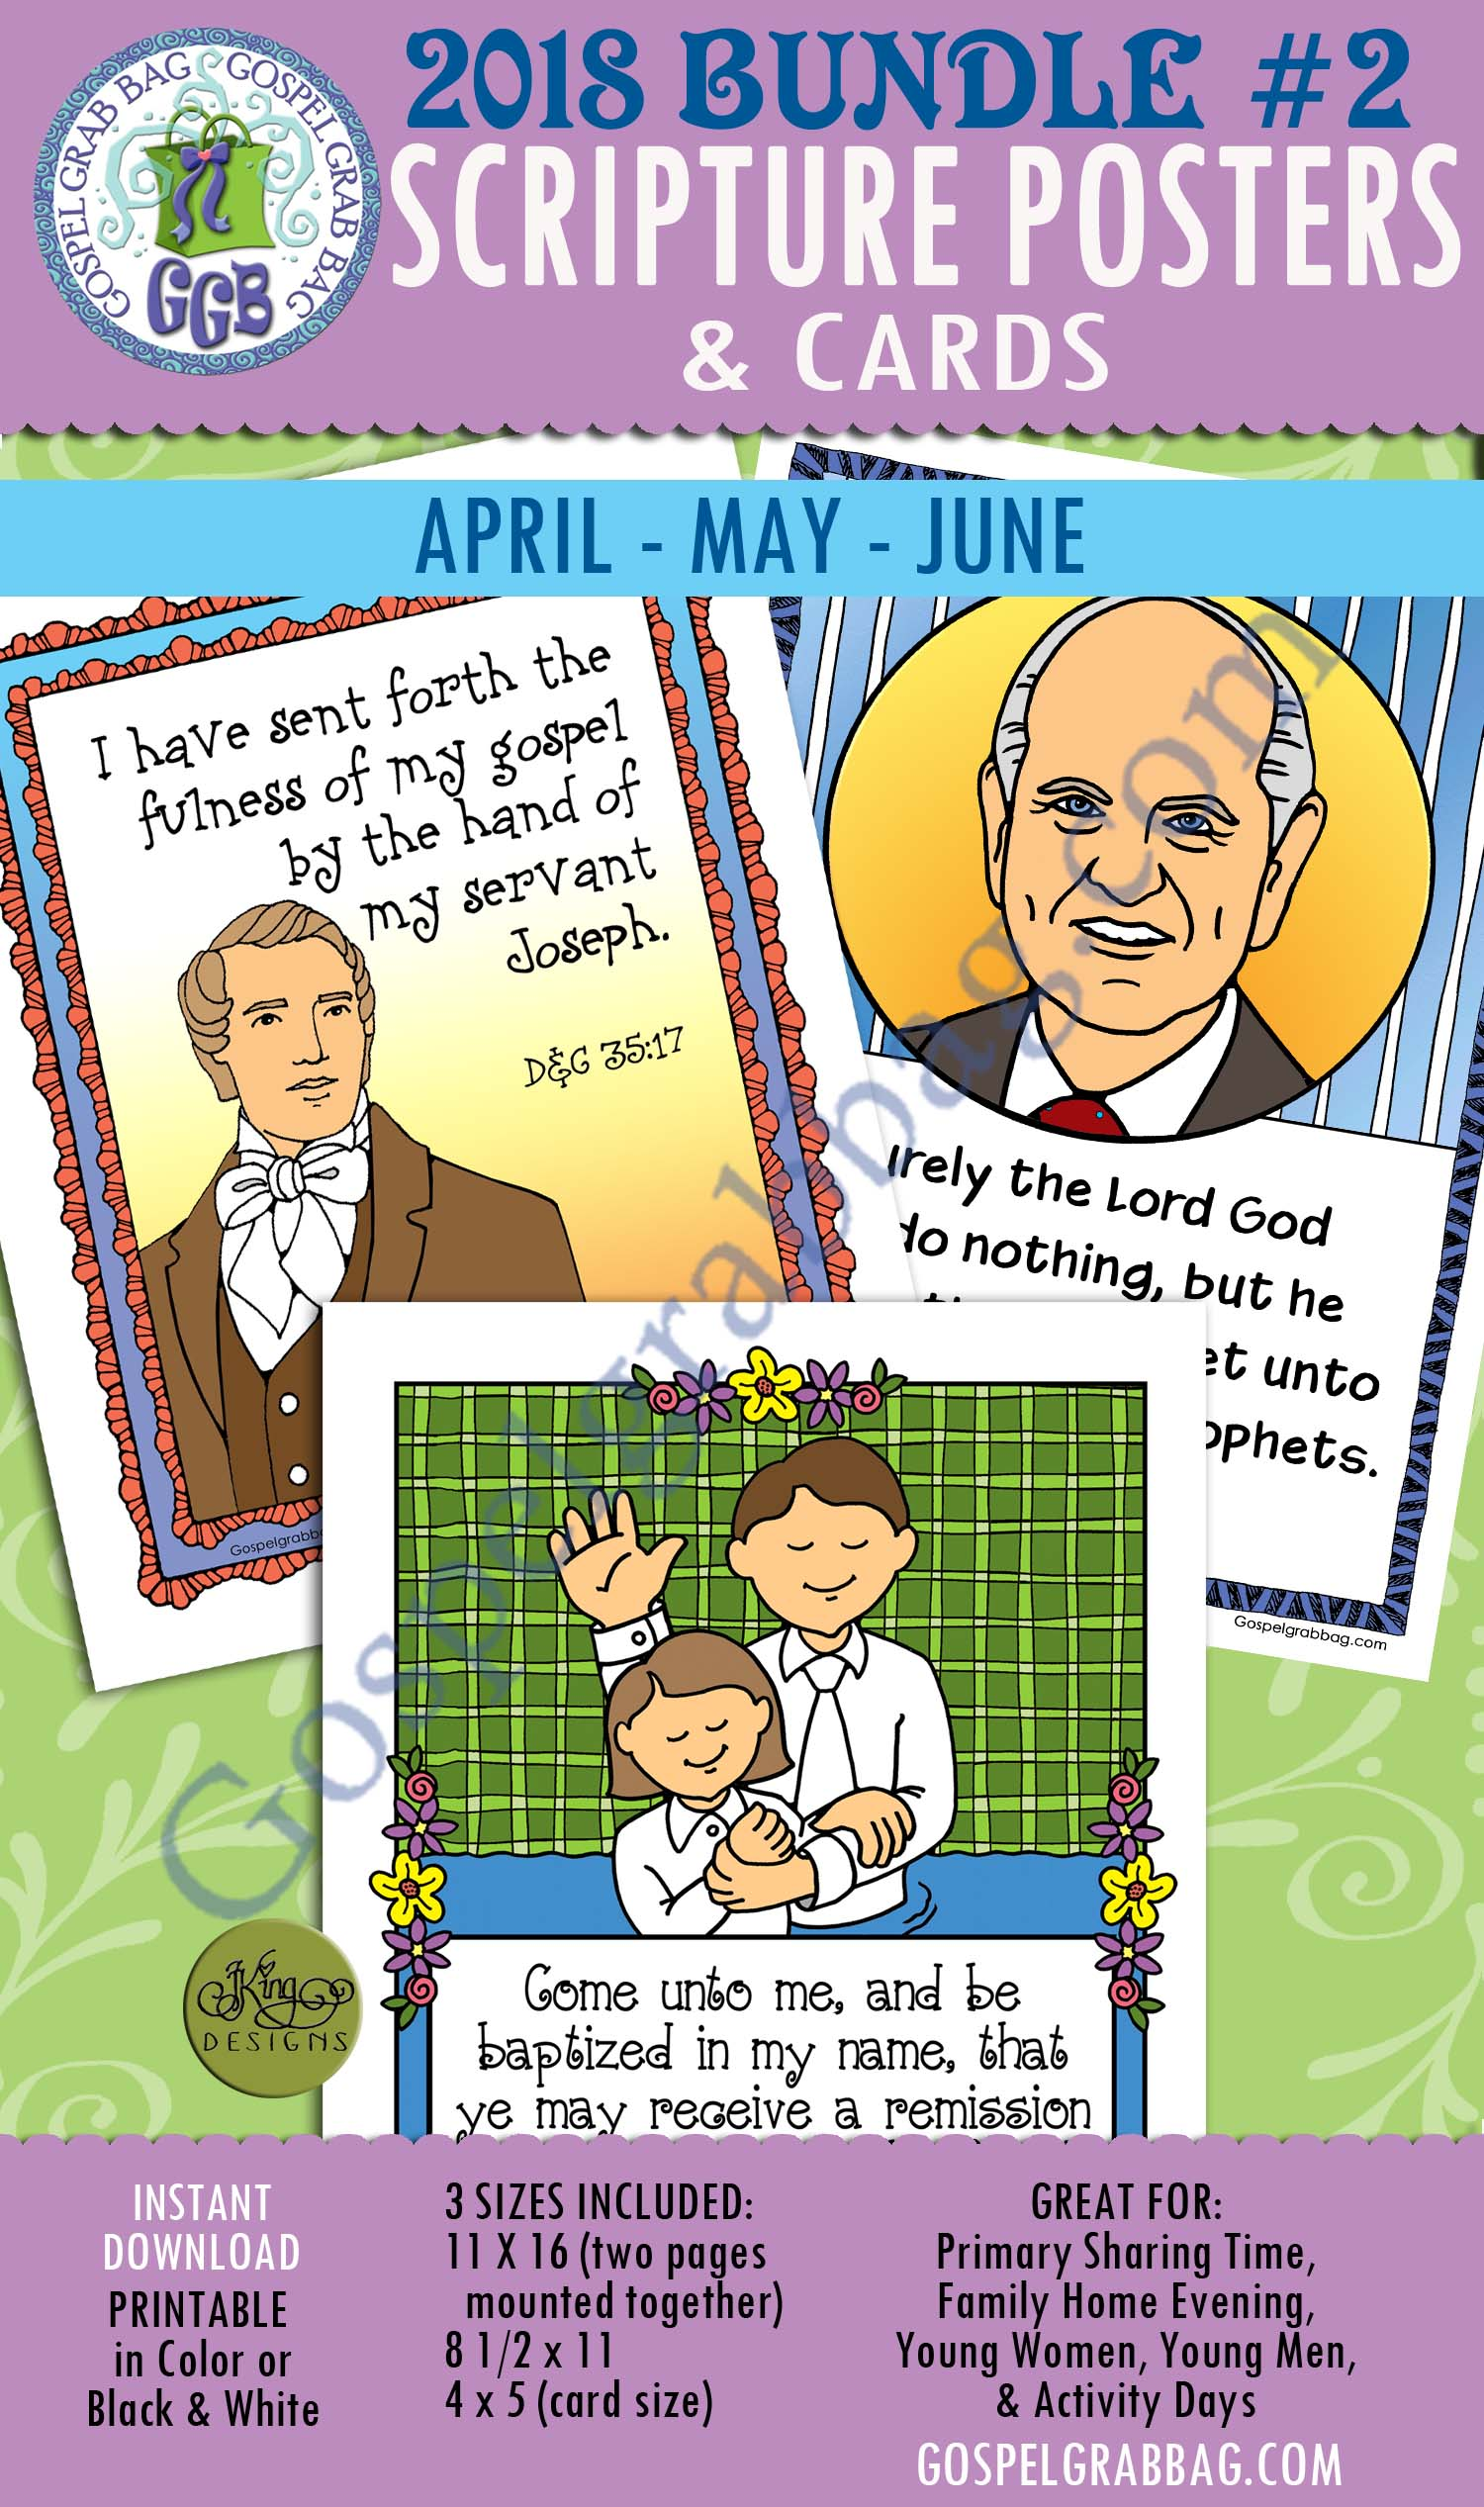 $4.00 BUNDLE #2 Scripture Posters & Cards for Sharing Time, April, May, June 2018 Sharing Time